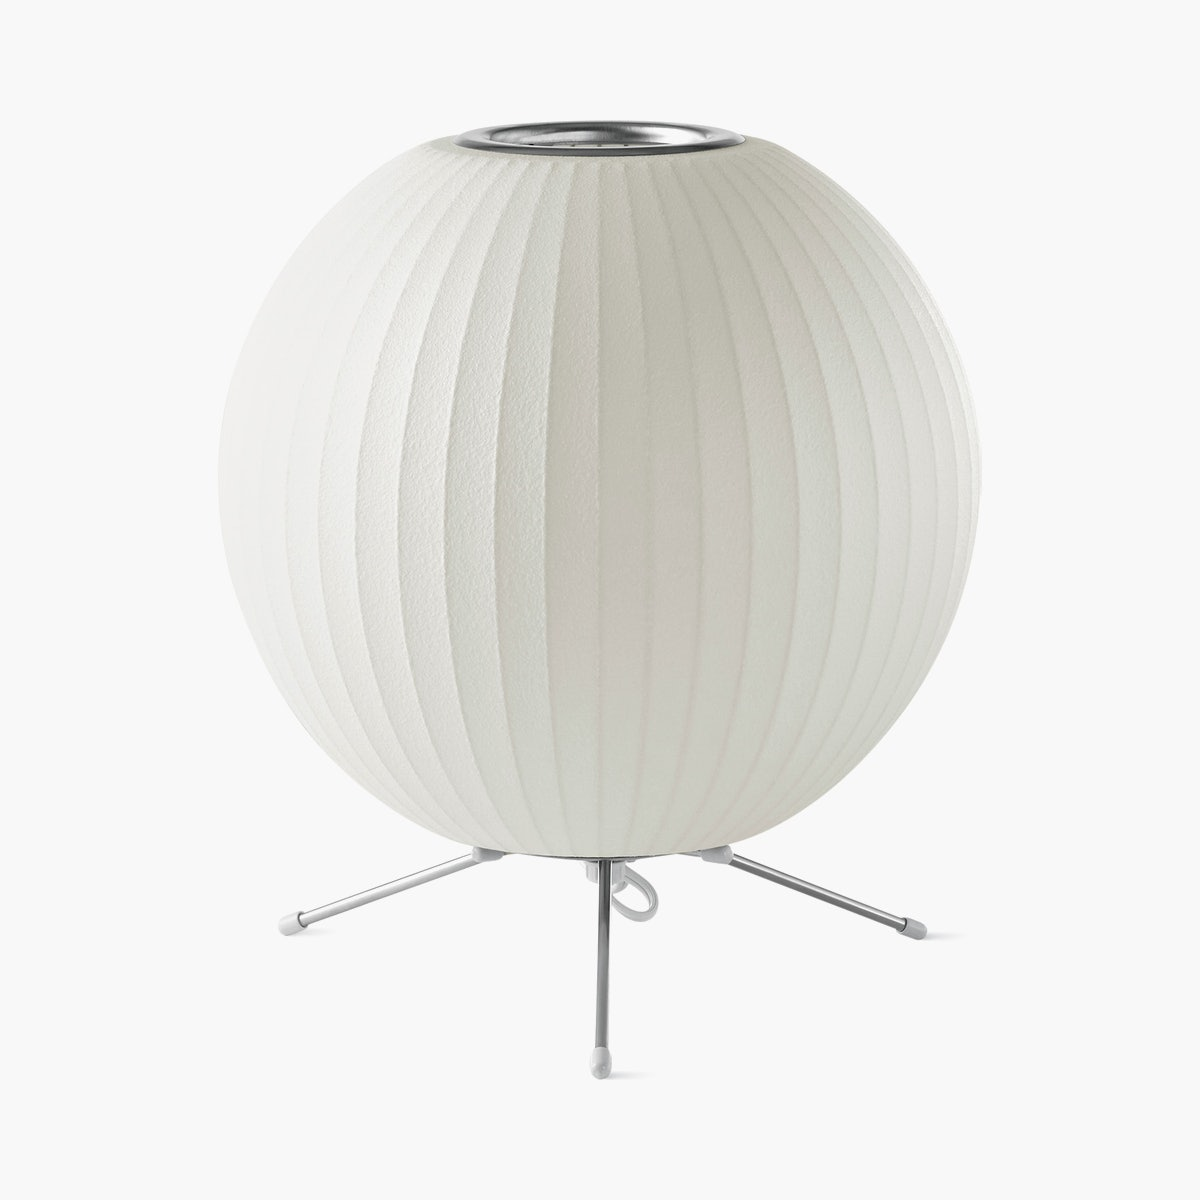 Nelson Ball Tripod Lamp